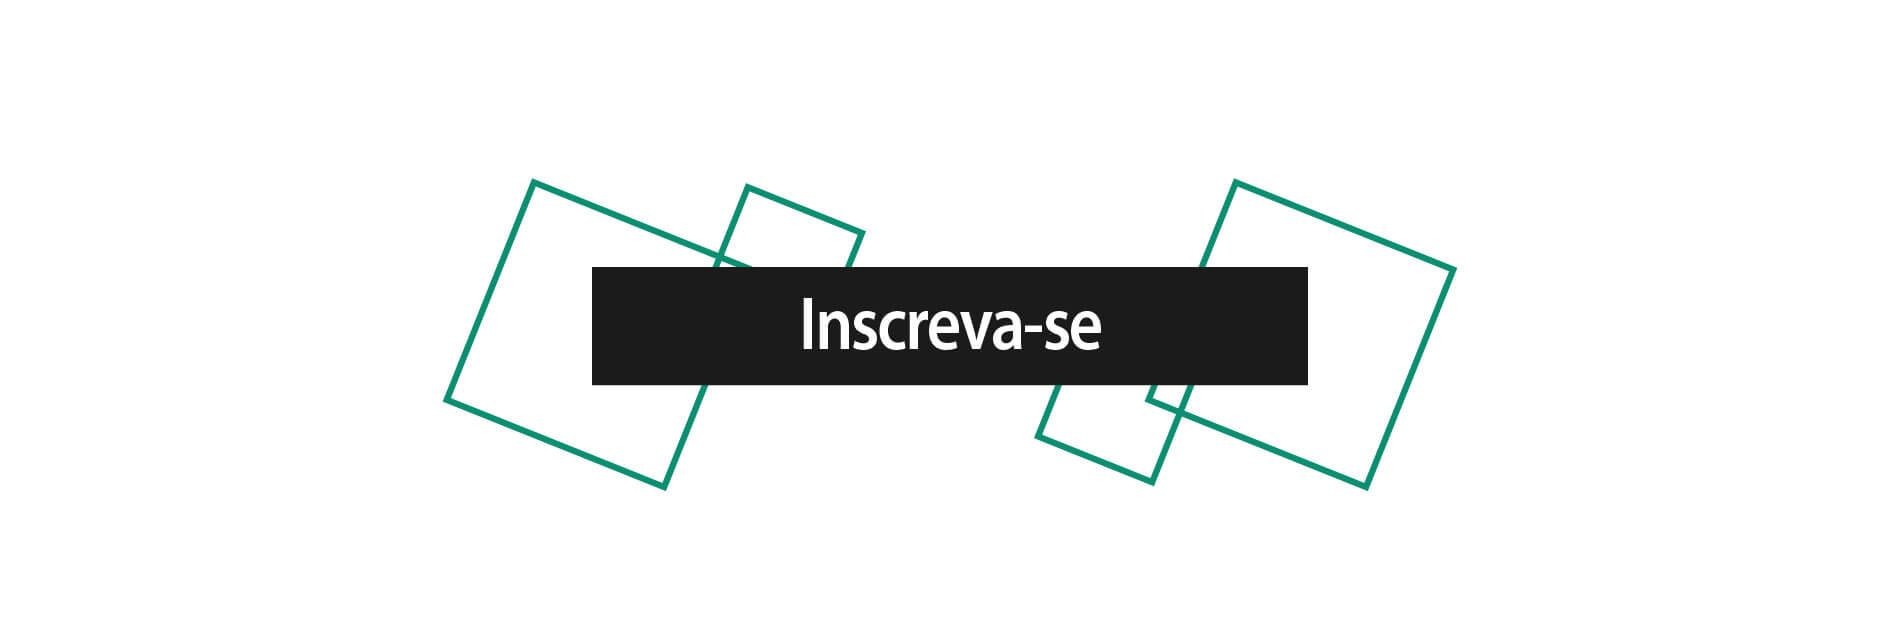 https://www.mestregp.com.br/wp-content/uploads/2018/01/Pagina-Meeting-Project-Increva-se-1900x624.jpg